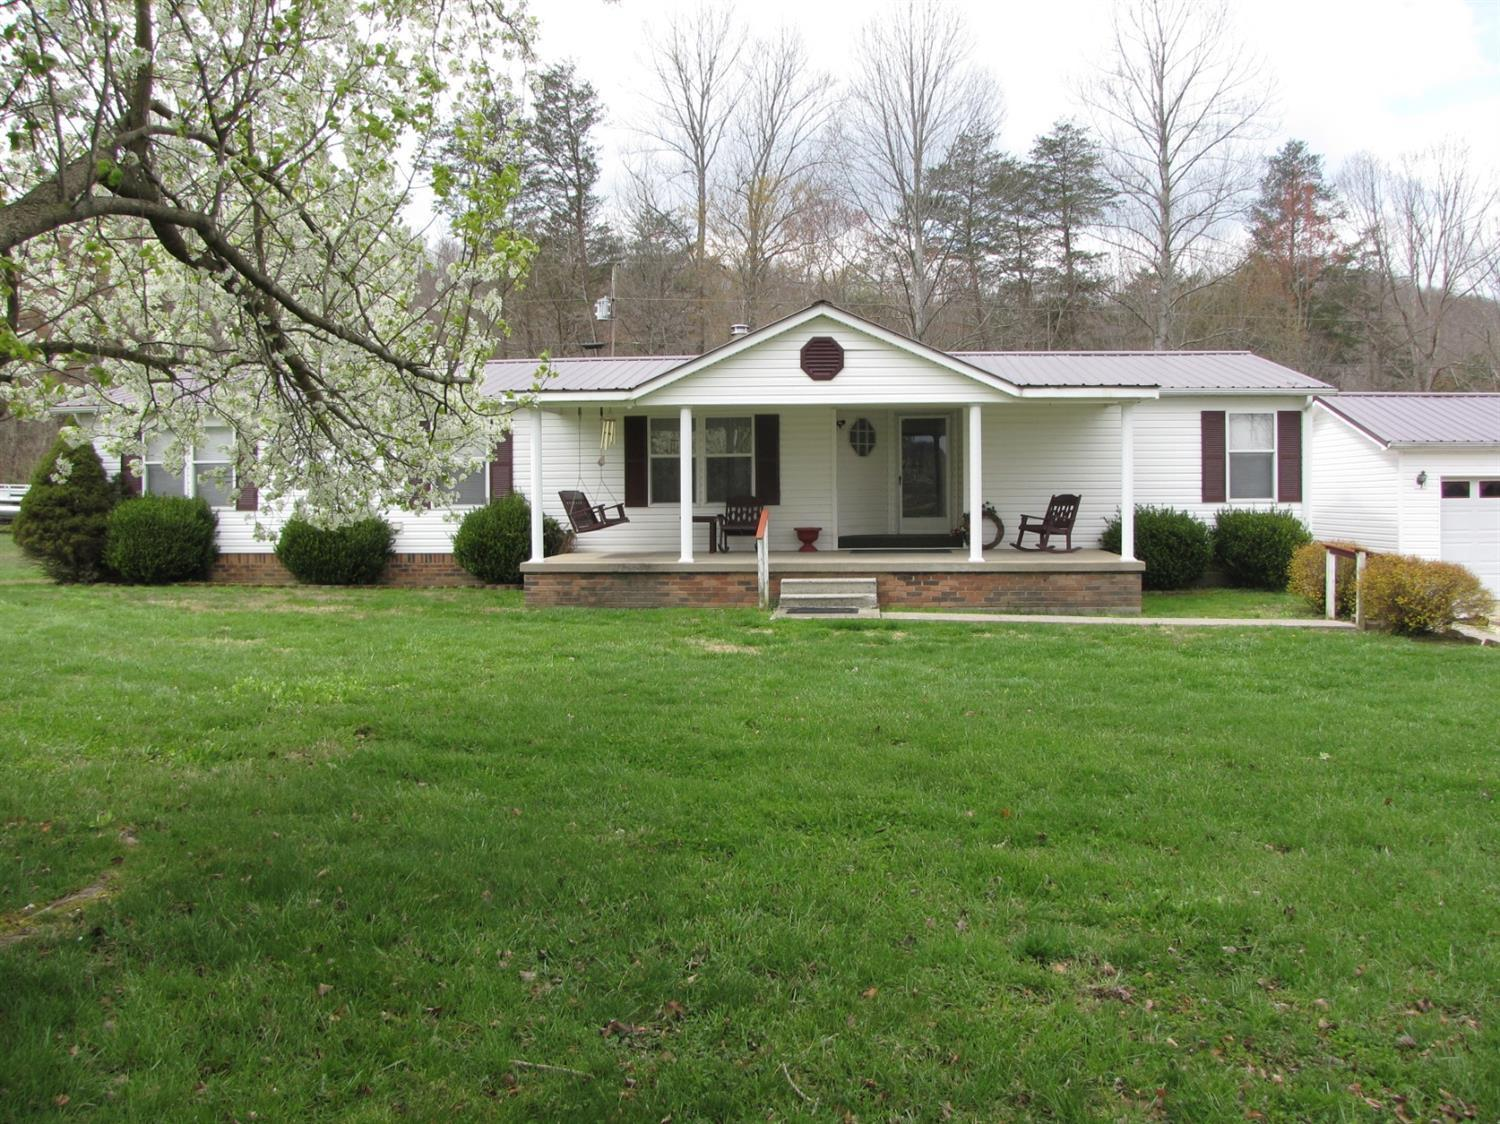 144 Astor Lane, 20104542, Crab Orchard, Single-Family Home,  for sale, Realty World Adams & Associates, Inc.